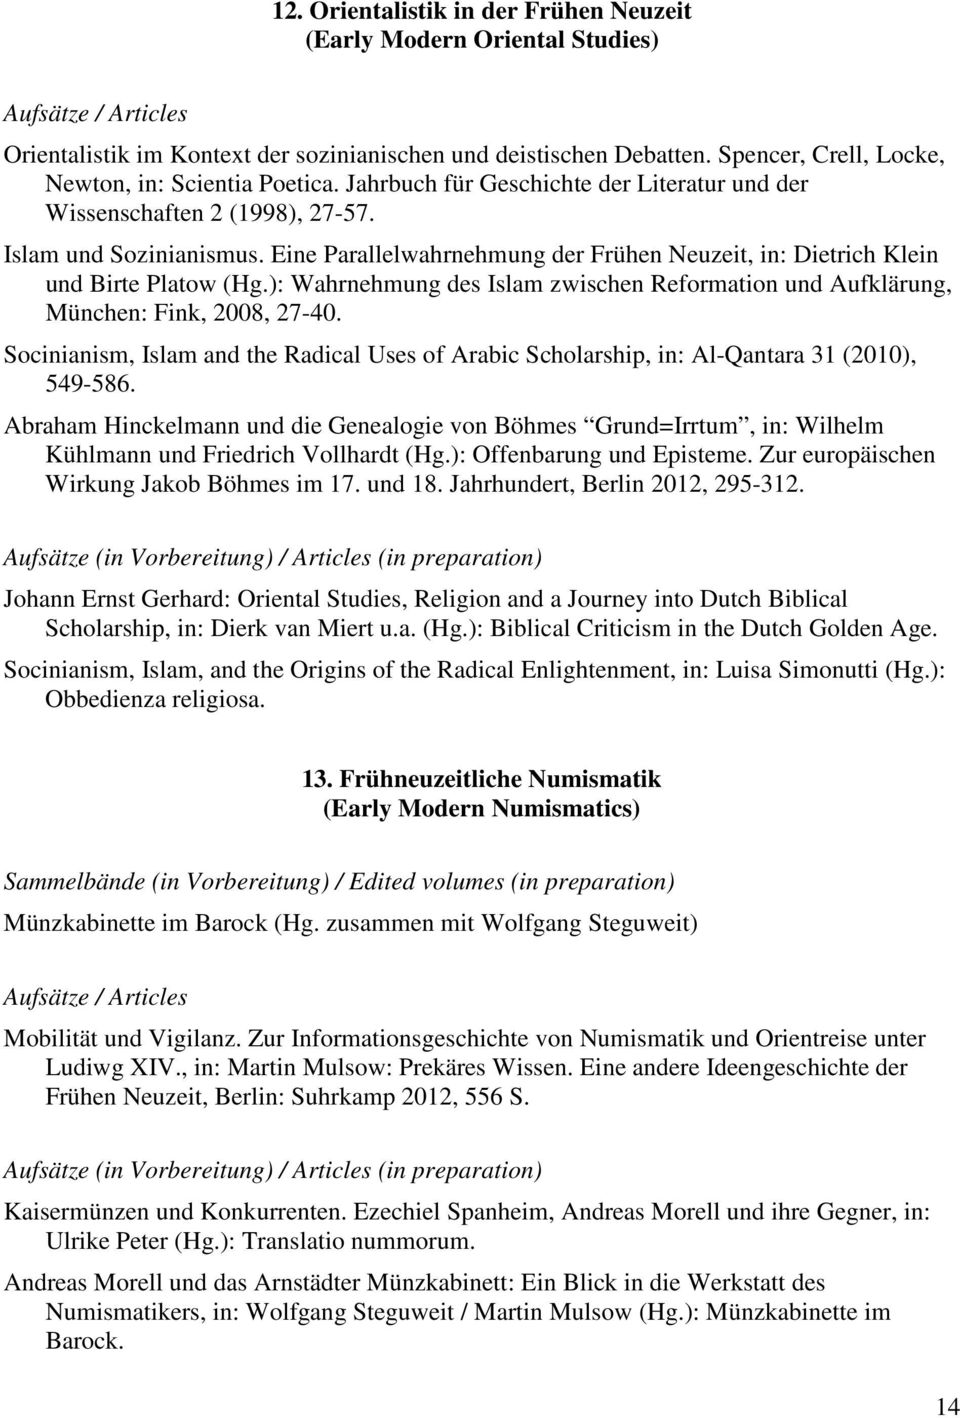 ): Wahrnehmung des Islam zwischen Reformation und Aufklärung, München: Fink, 2008, 27-40. Socinianism, Islam and the Radical Uses of Arabic Scholarship, in: Al-Qantara 31 (2010), 549-586.